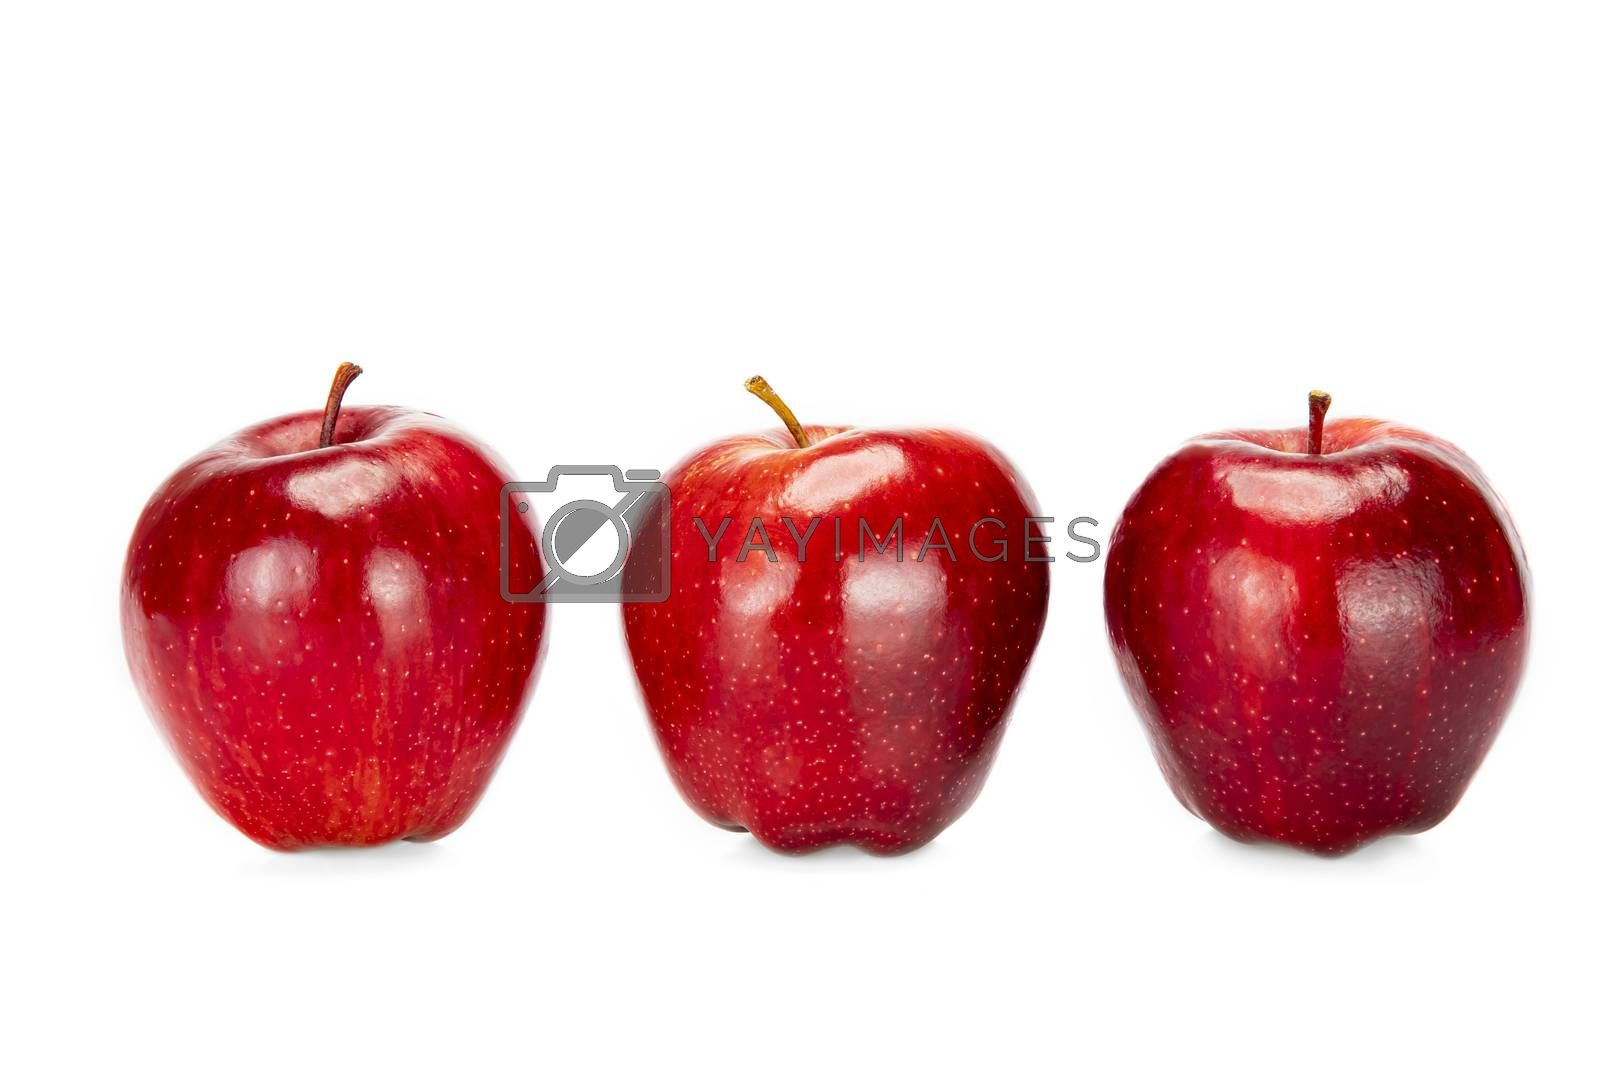 Three red apples, isolated on white background.